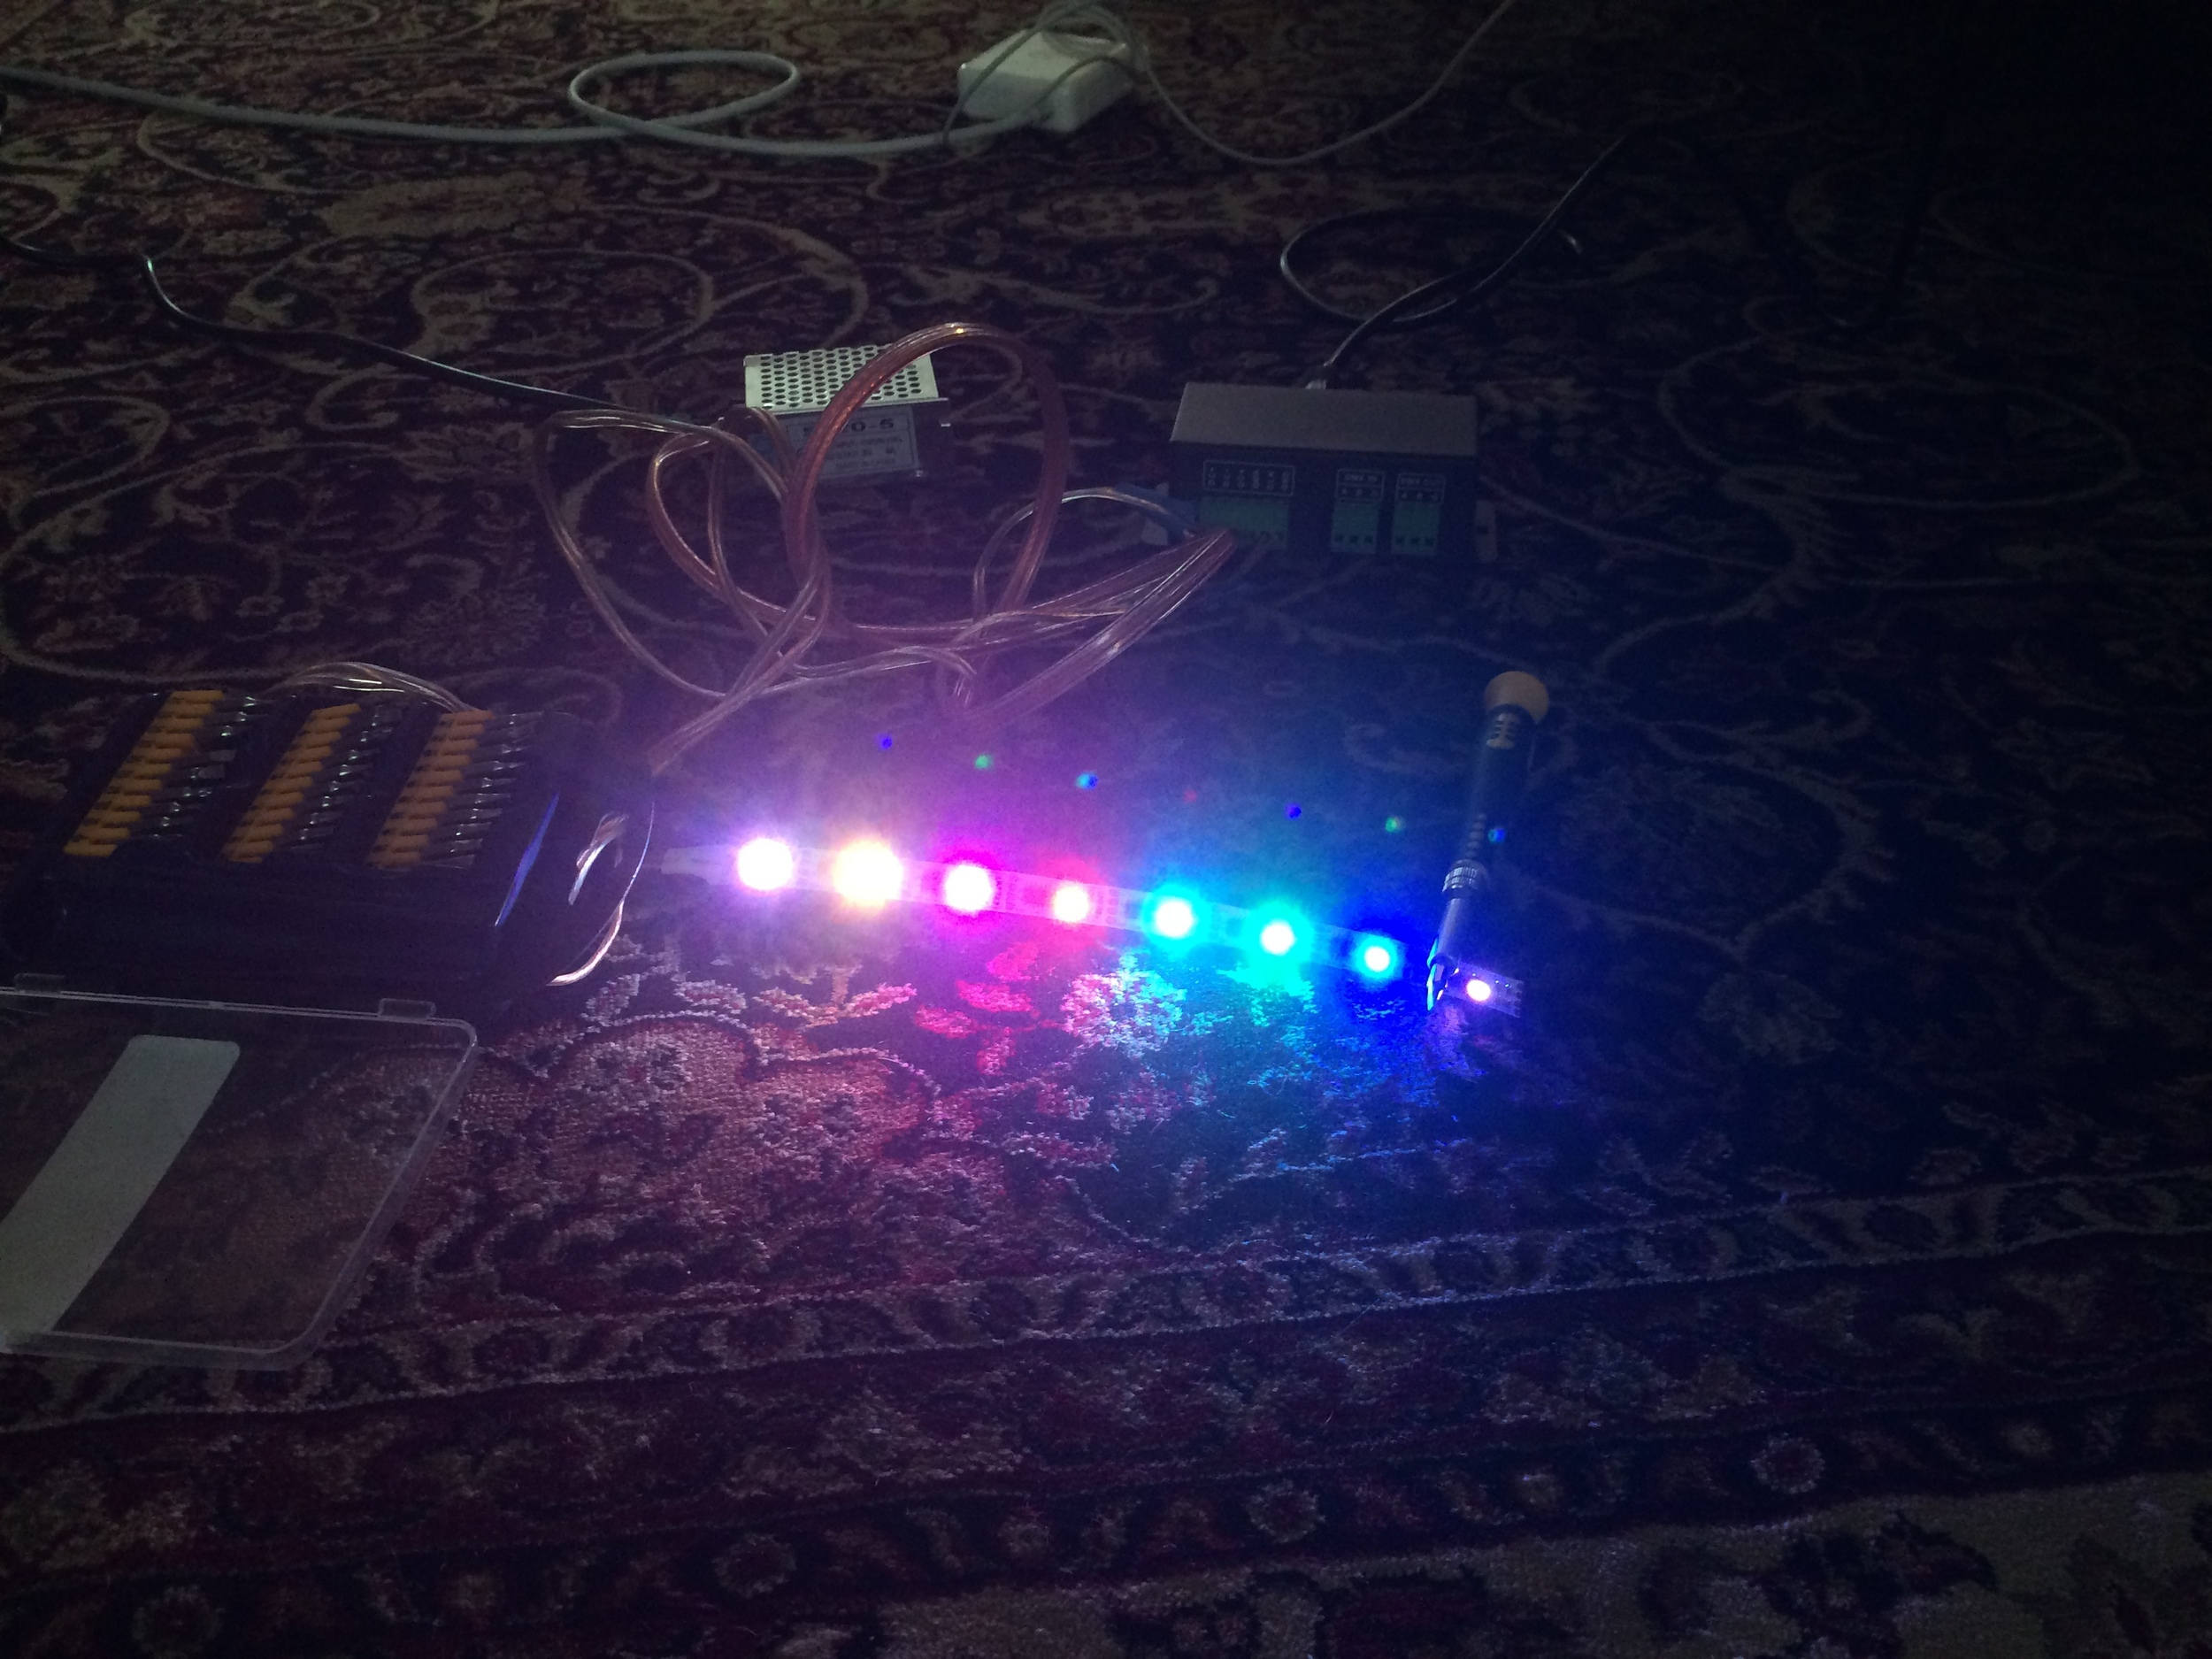 ... you get realtime color control to any RGB DMX light.